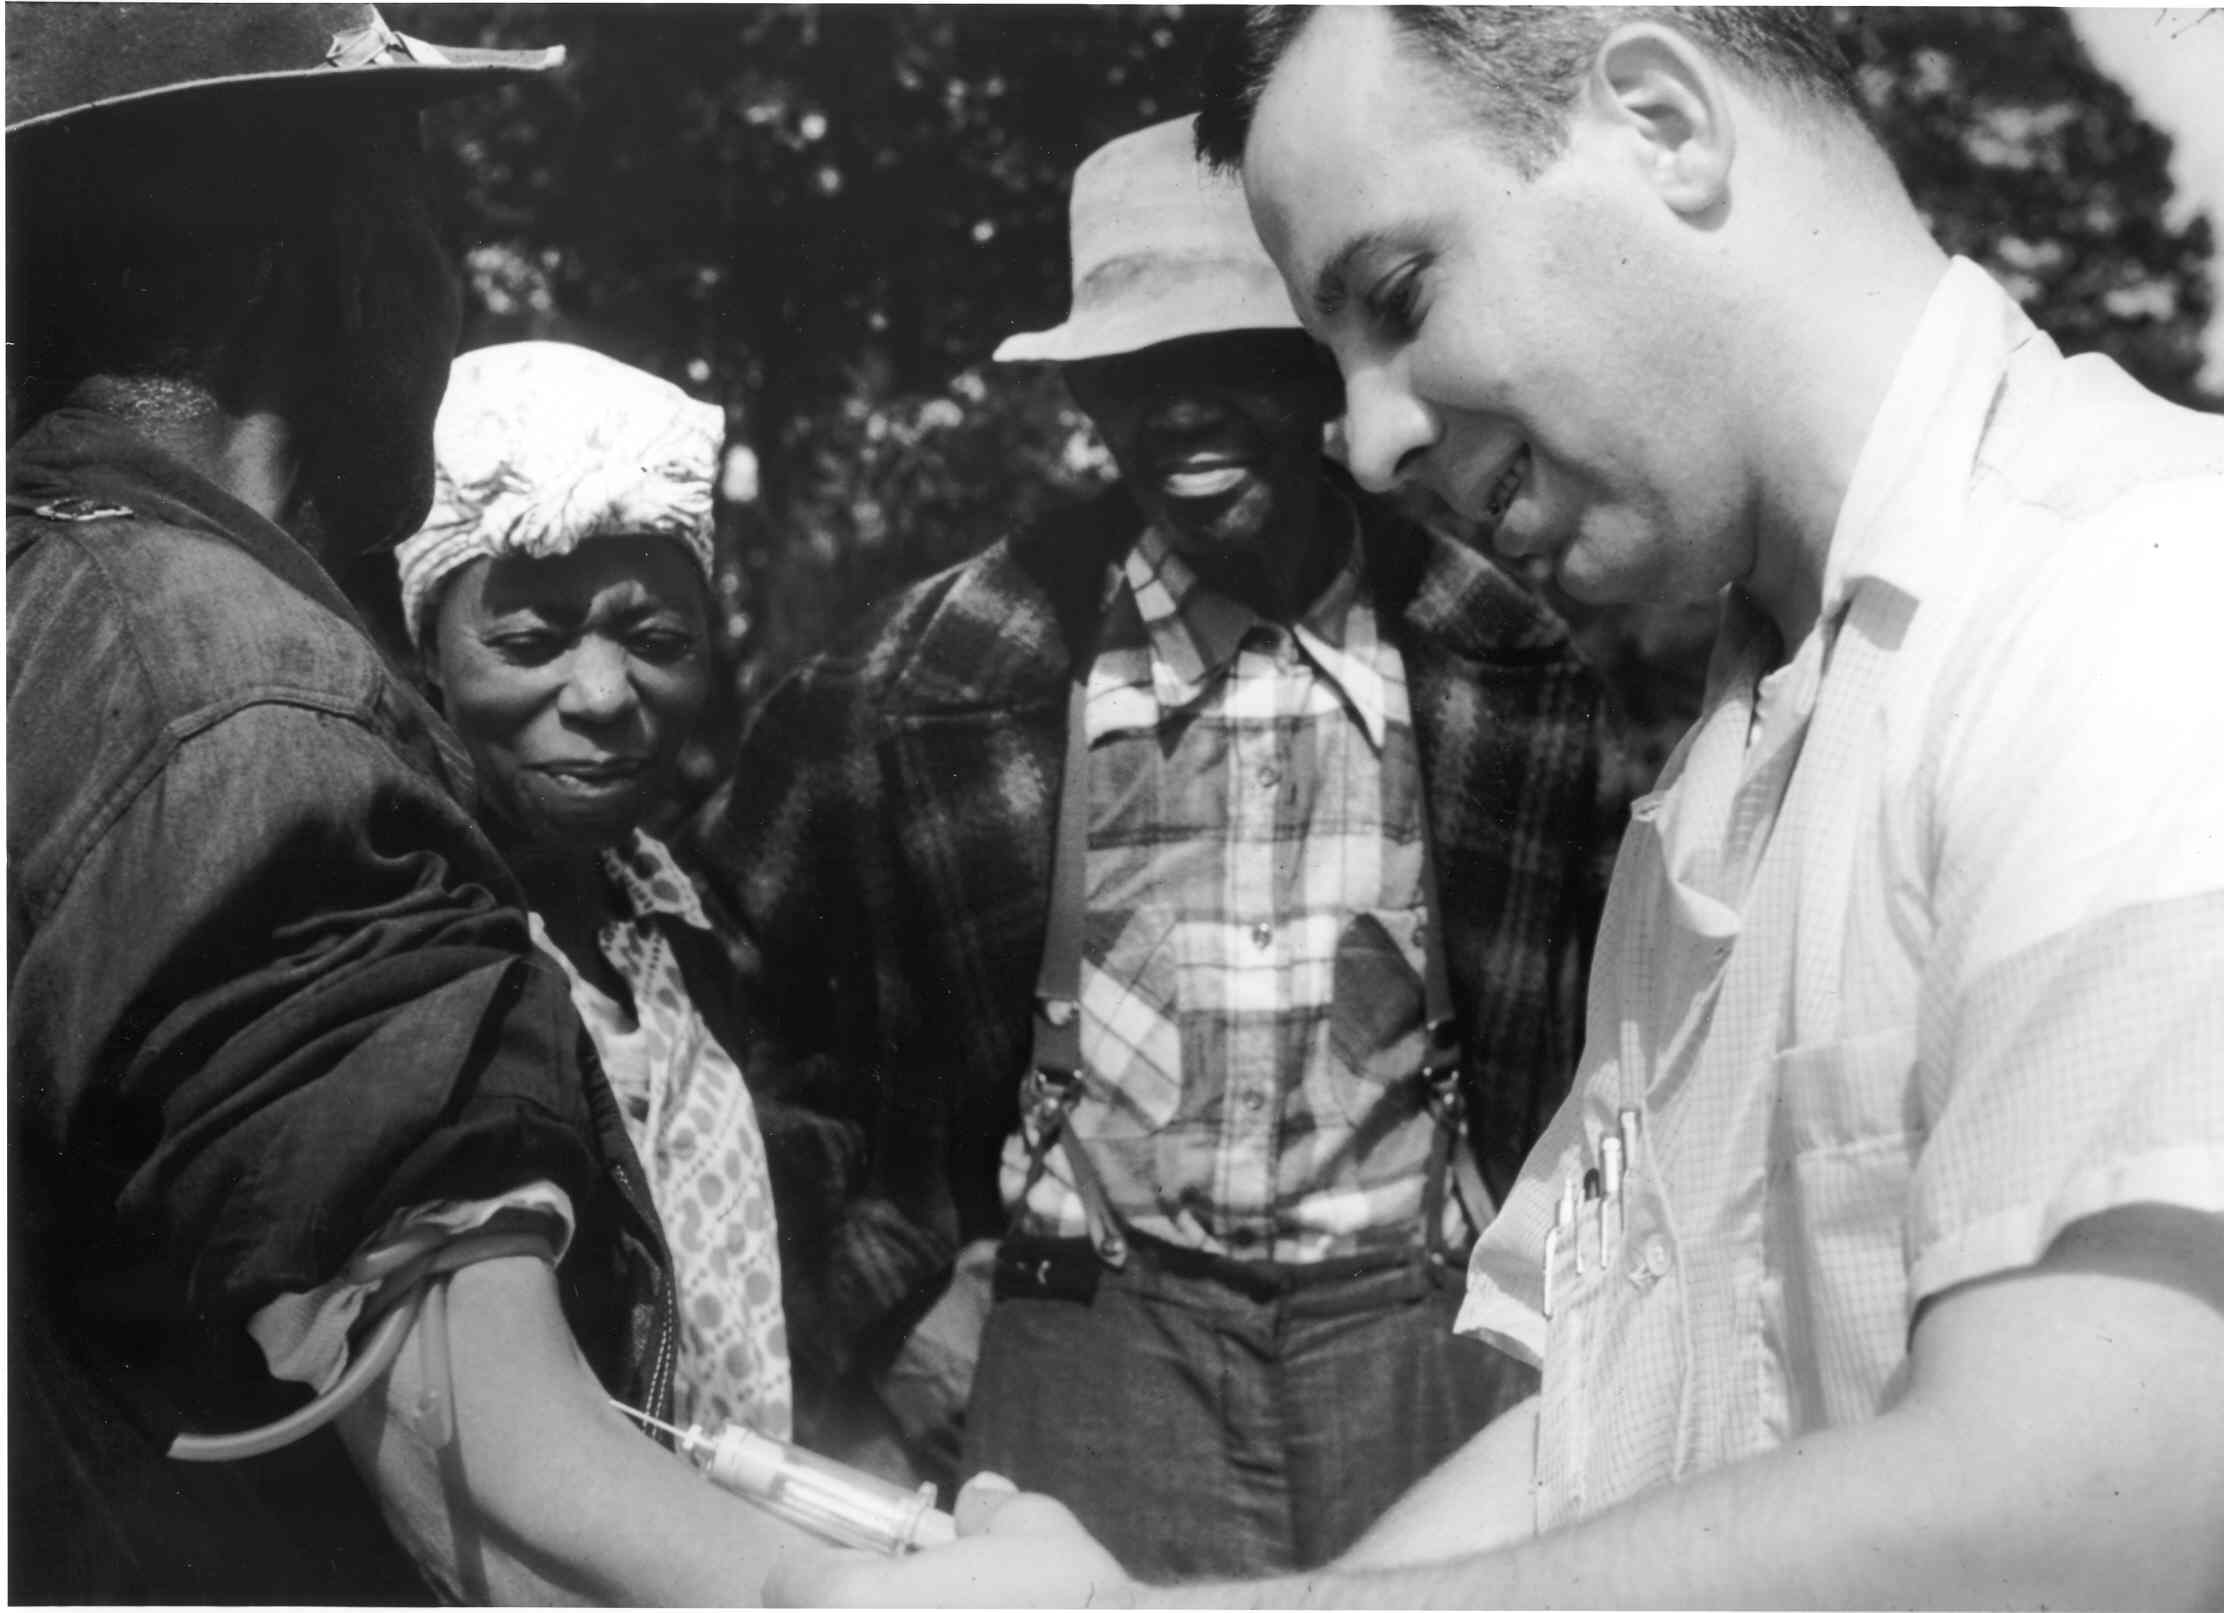 https://upload.wikimedia.org/wikipedia/commons/3/3a/Tuskegee-syphilis-study_doctor-injecting-subject.jpg